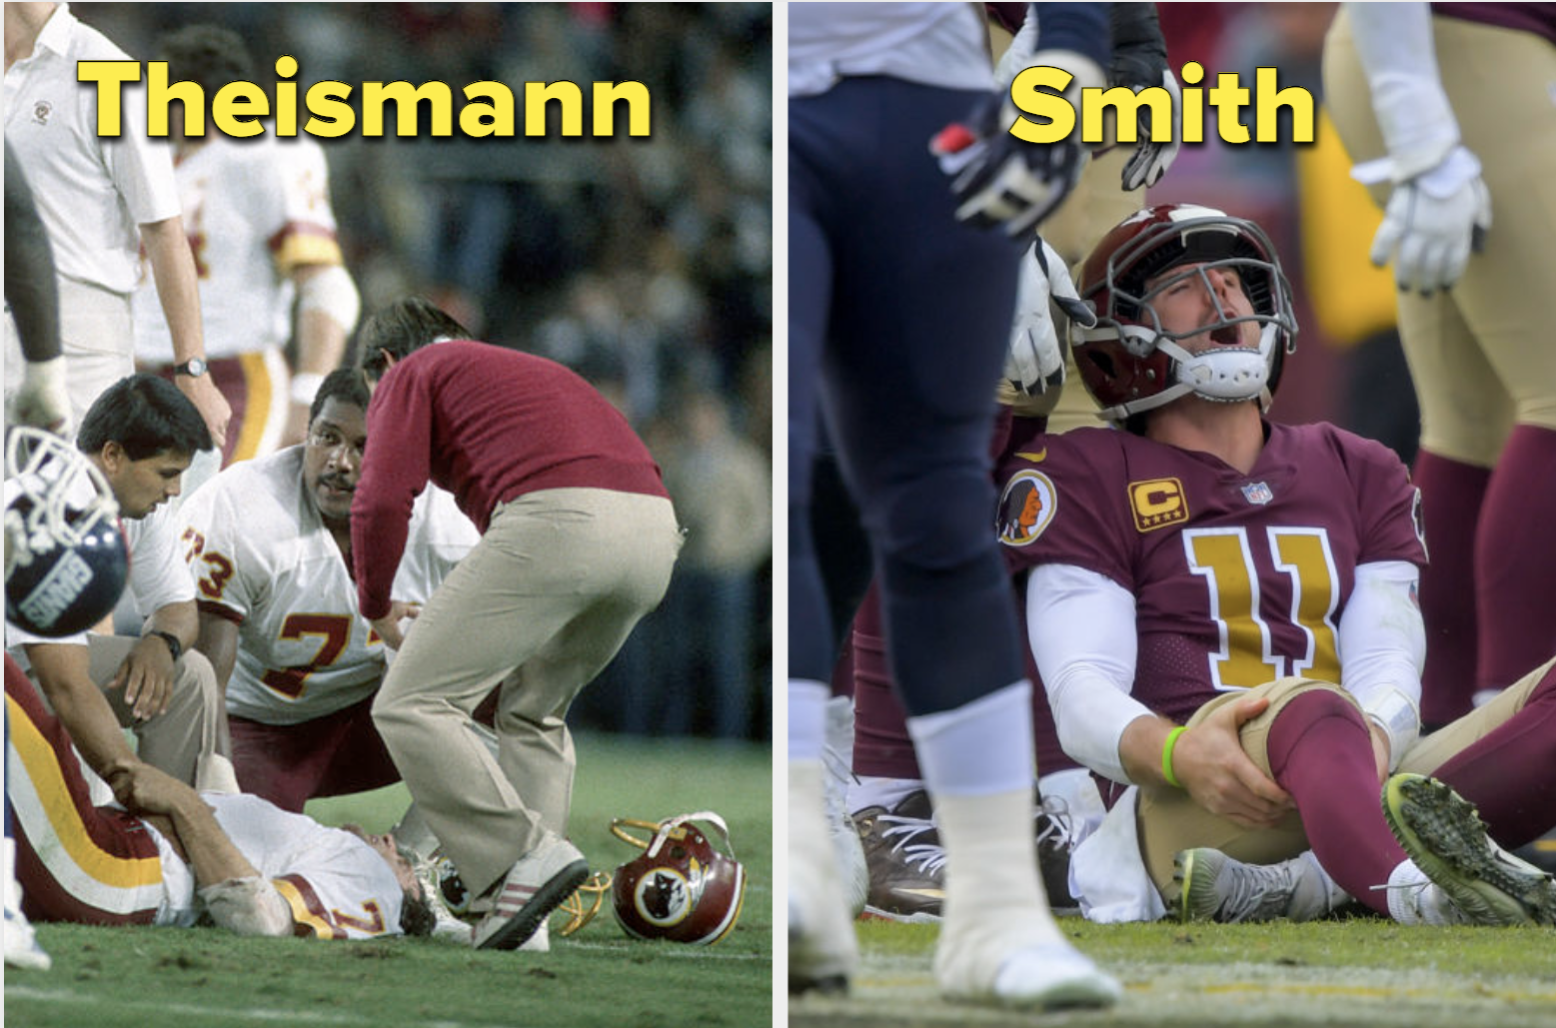 Side-by-side images of Joe Theismann and Alex Smith both injured on the field